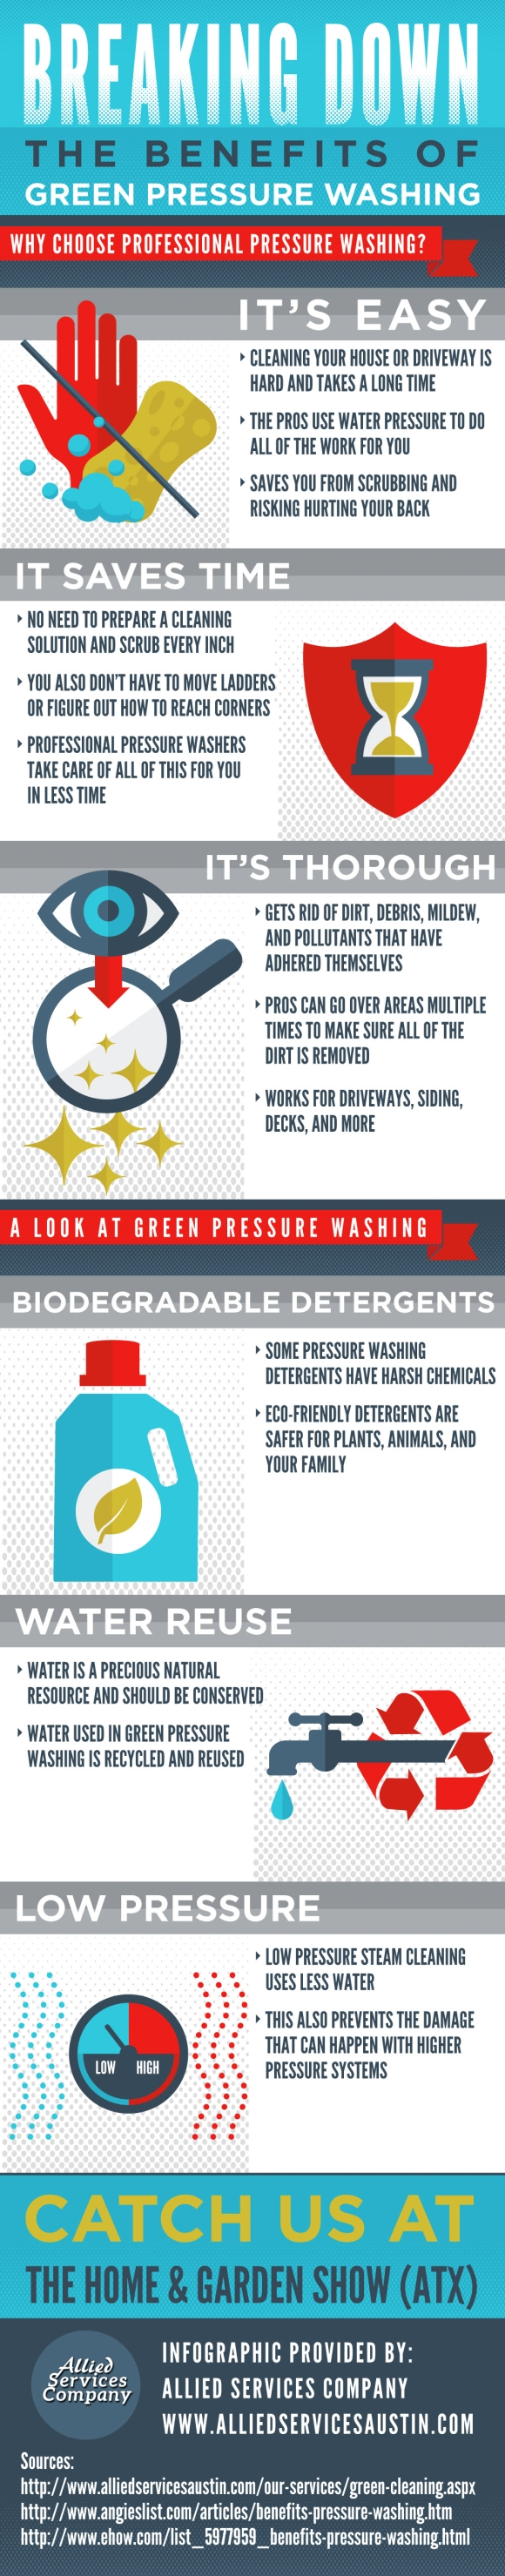 breaking down the benefits of green pressure washing [infographic]